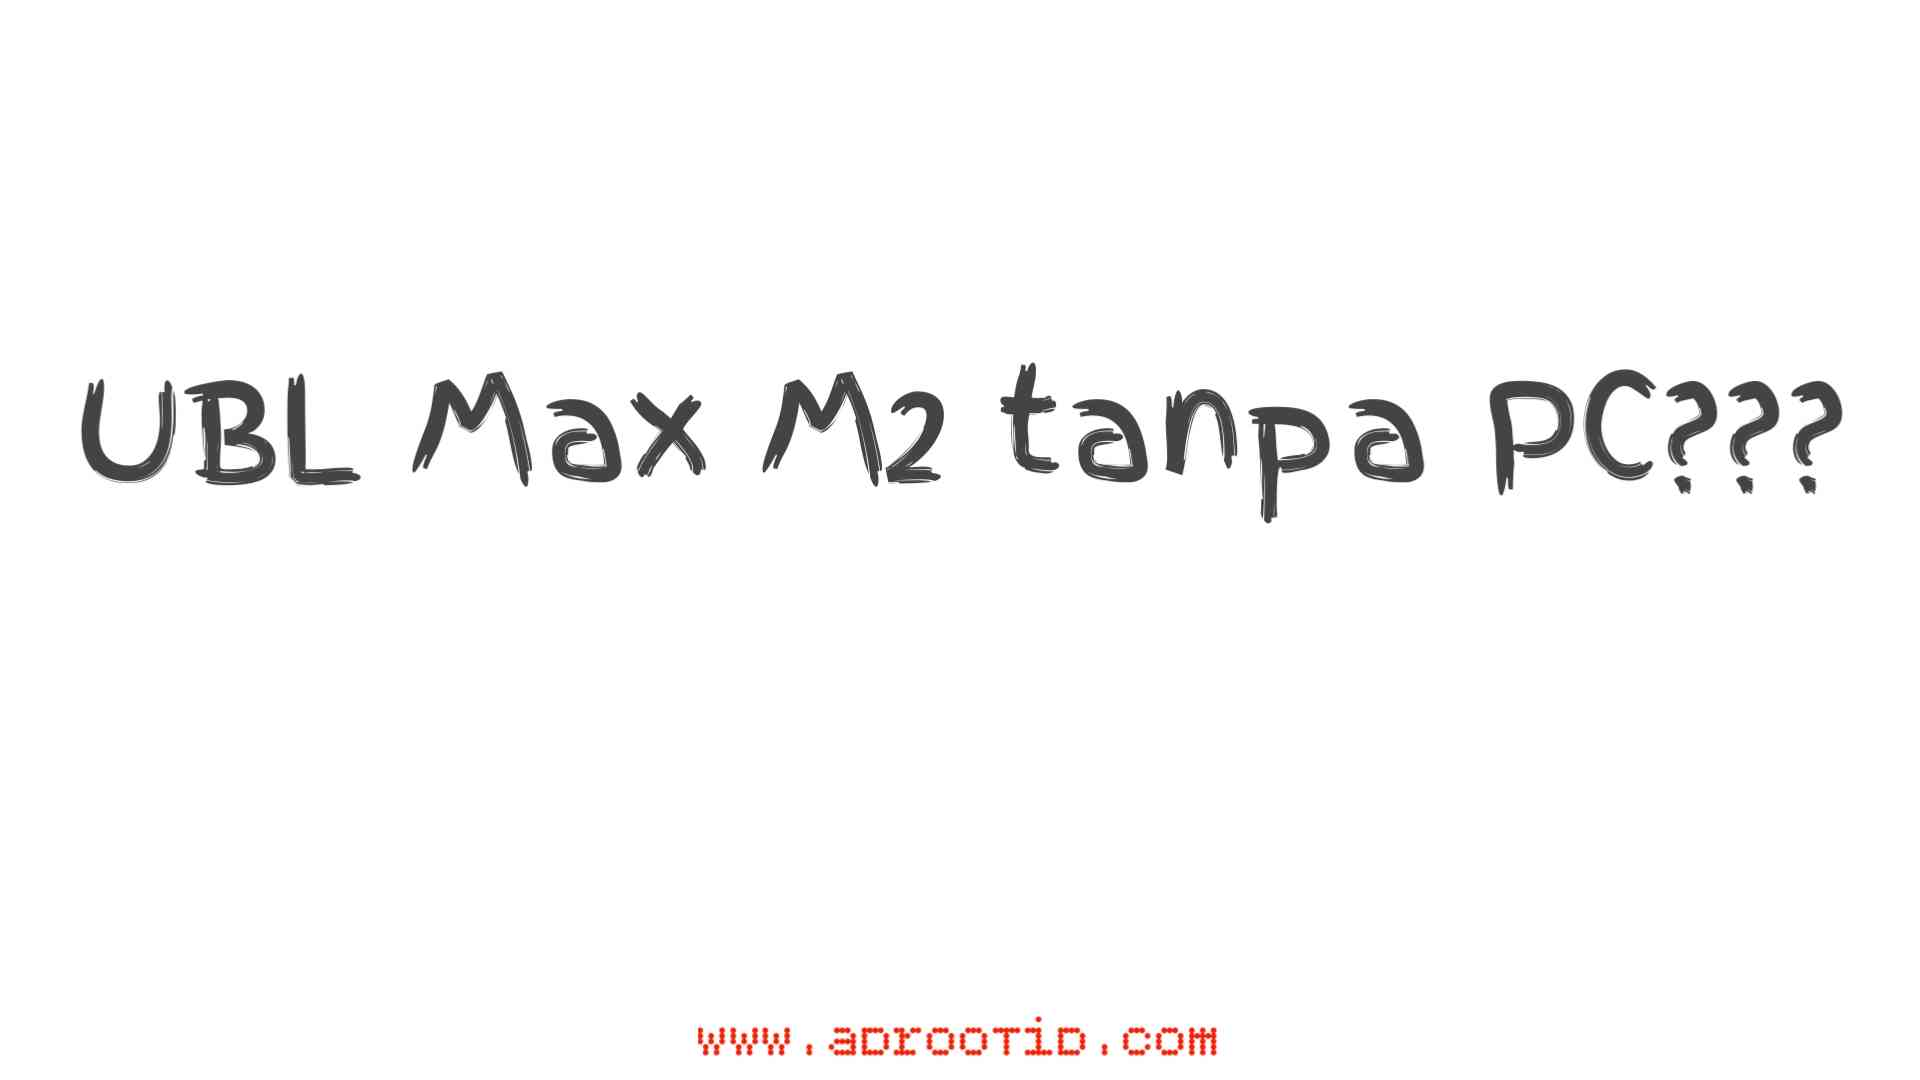 Unlock Bootloader Max M2 tanpa PC!